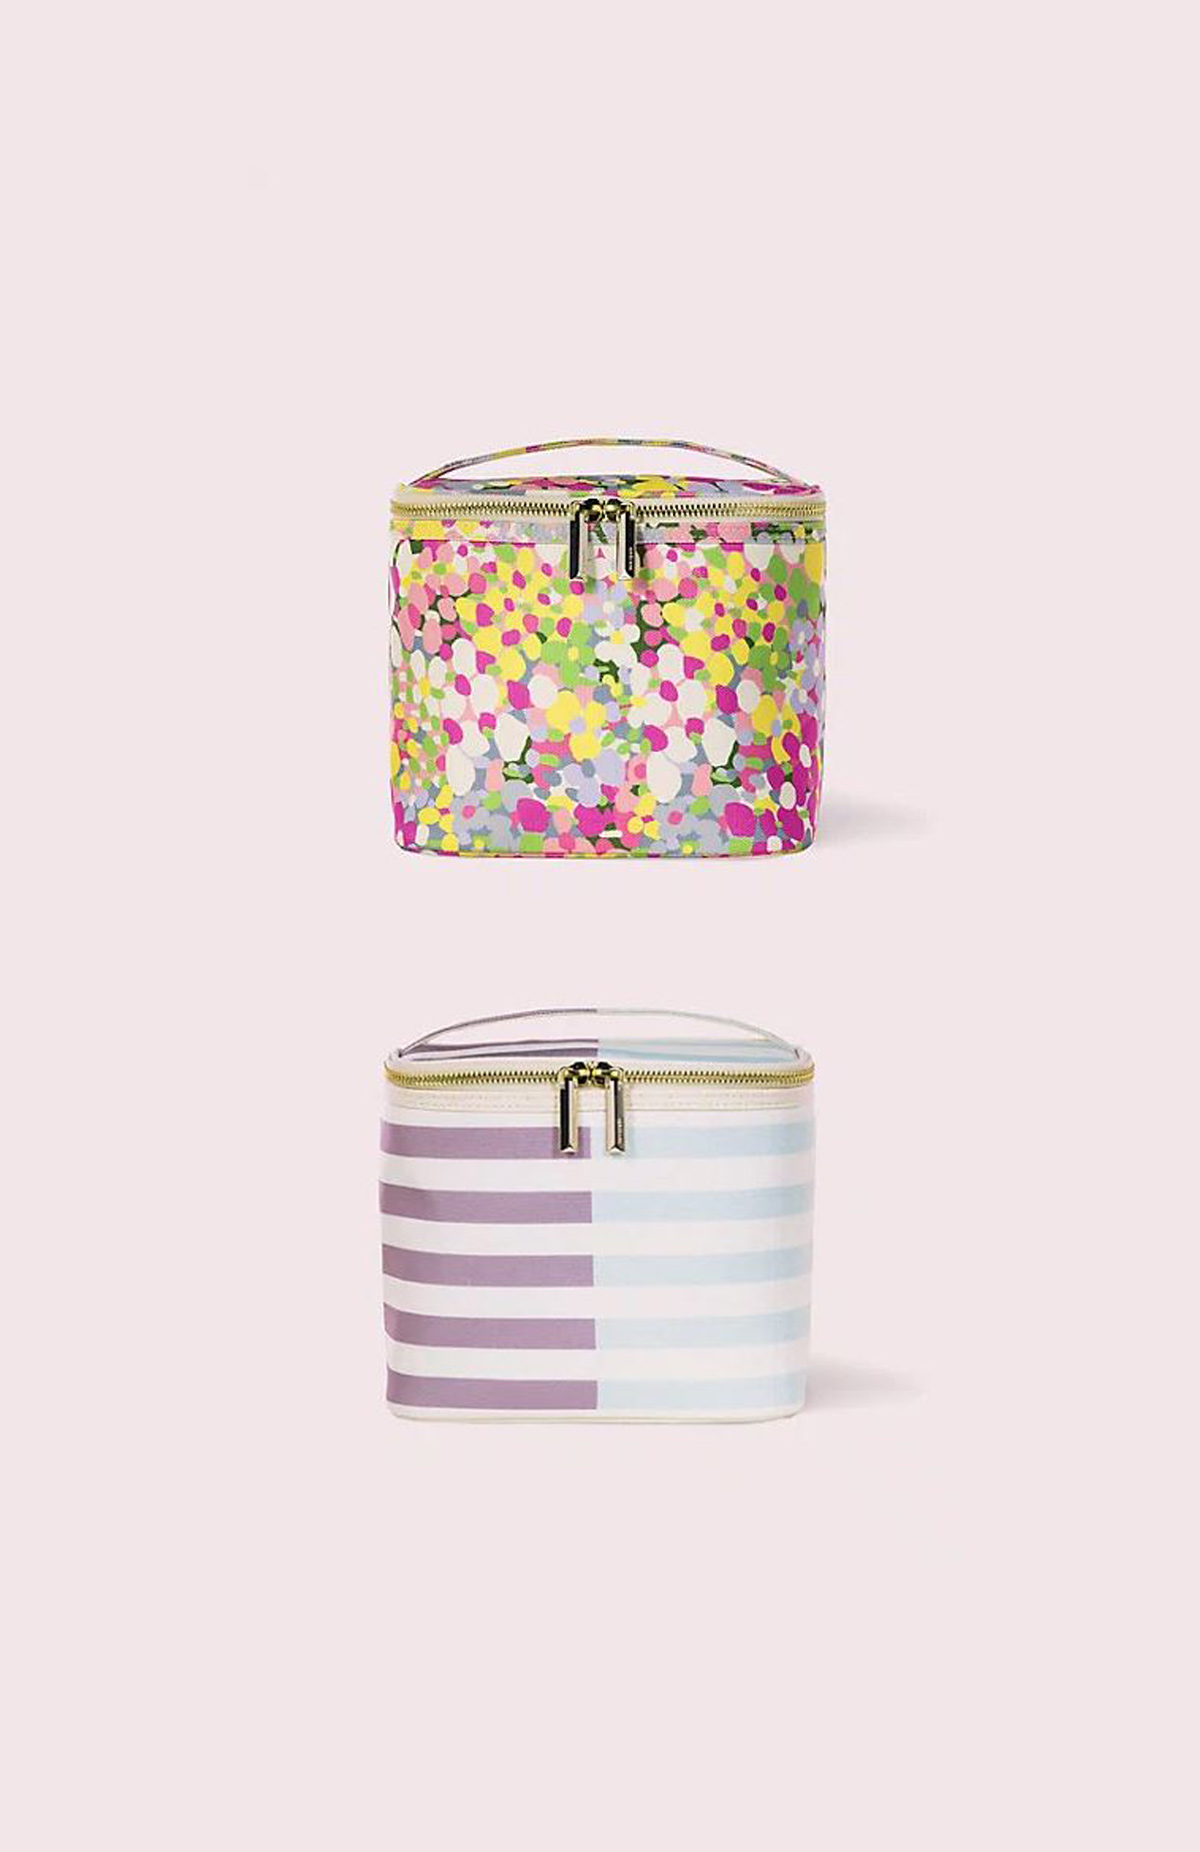 20 Cute Lunch Boxes For Adults Kate Spade Amazon